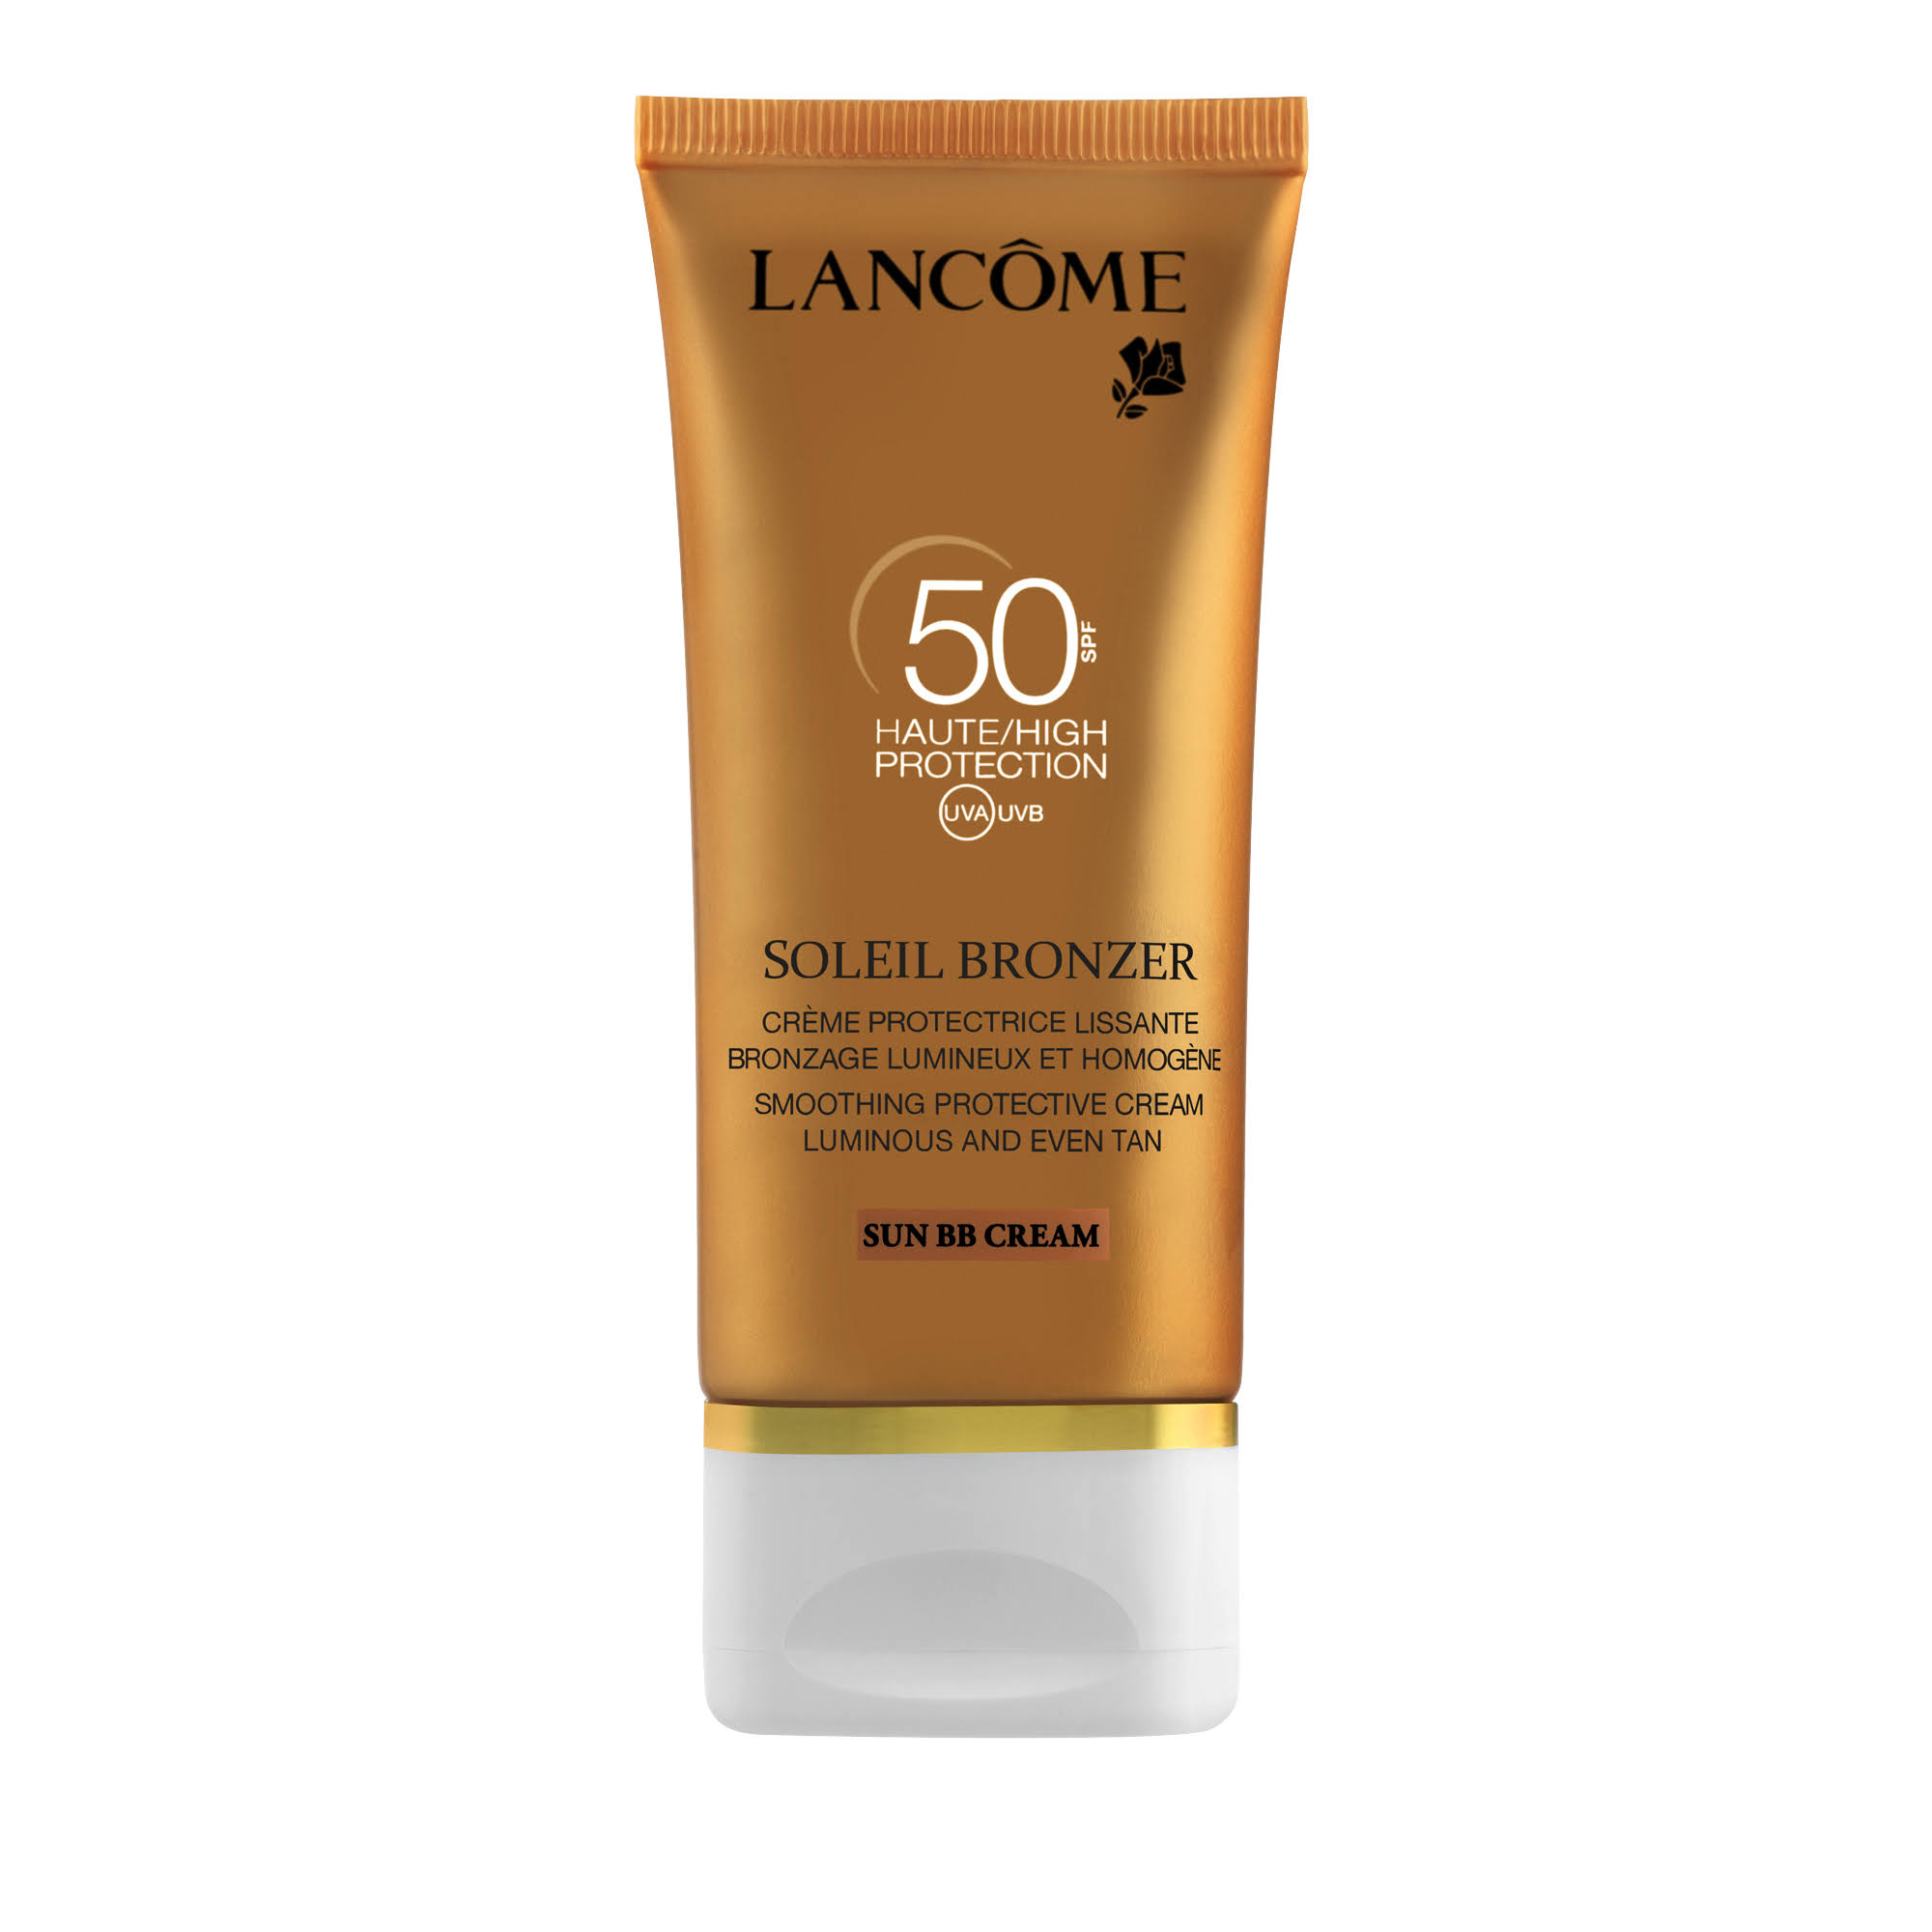 Lancome Soleil Bronzer Smoothing Protective Cream - 50ml